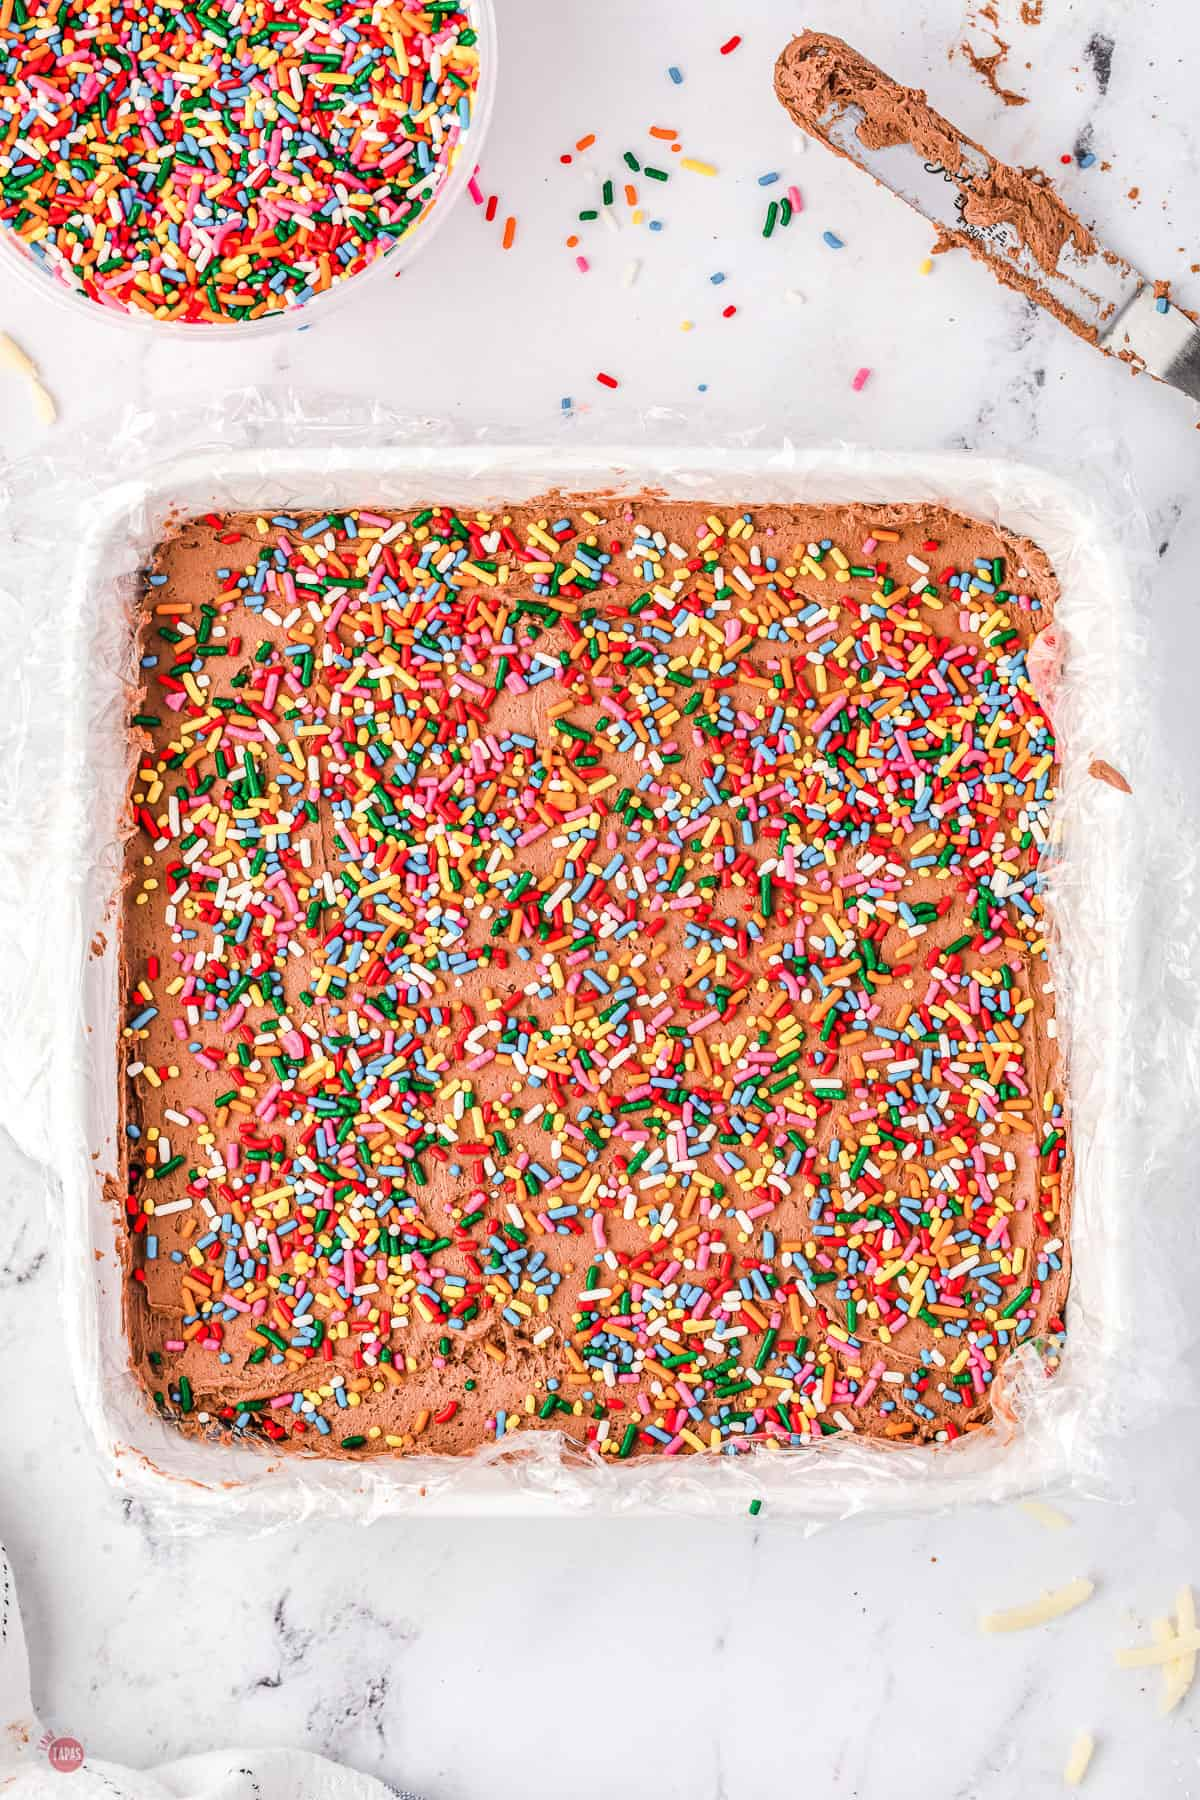 creamy cheese fudge with sprinkles in a pan